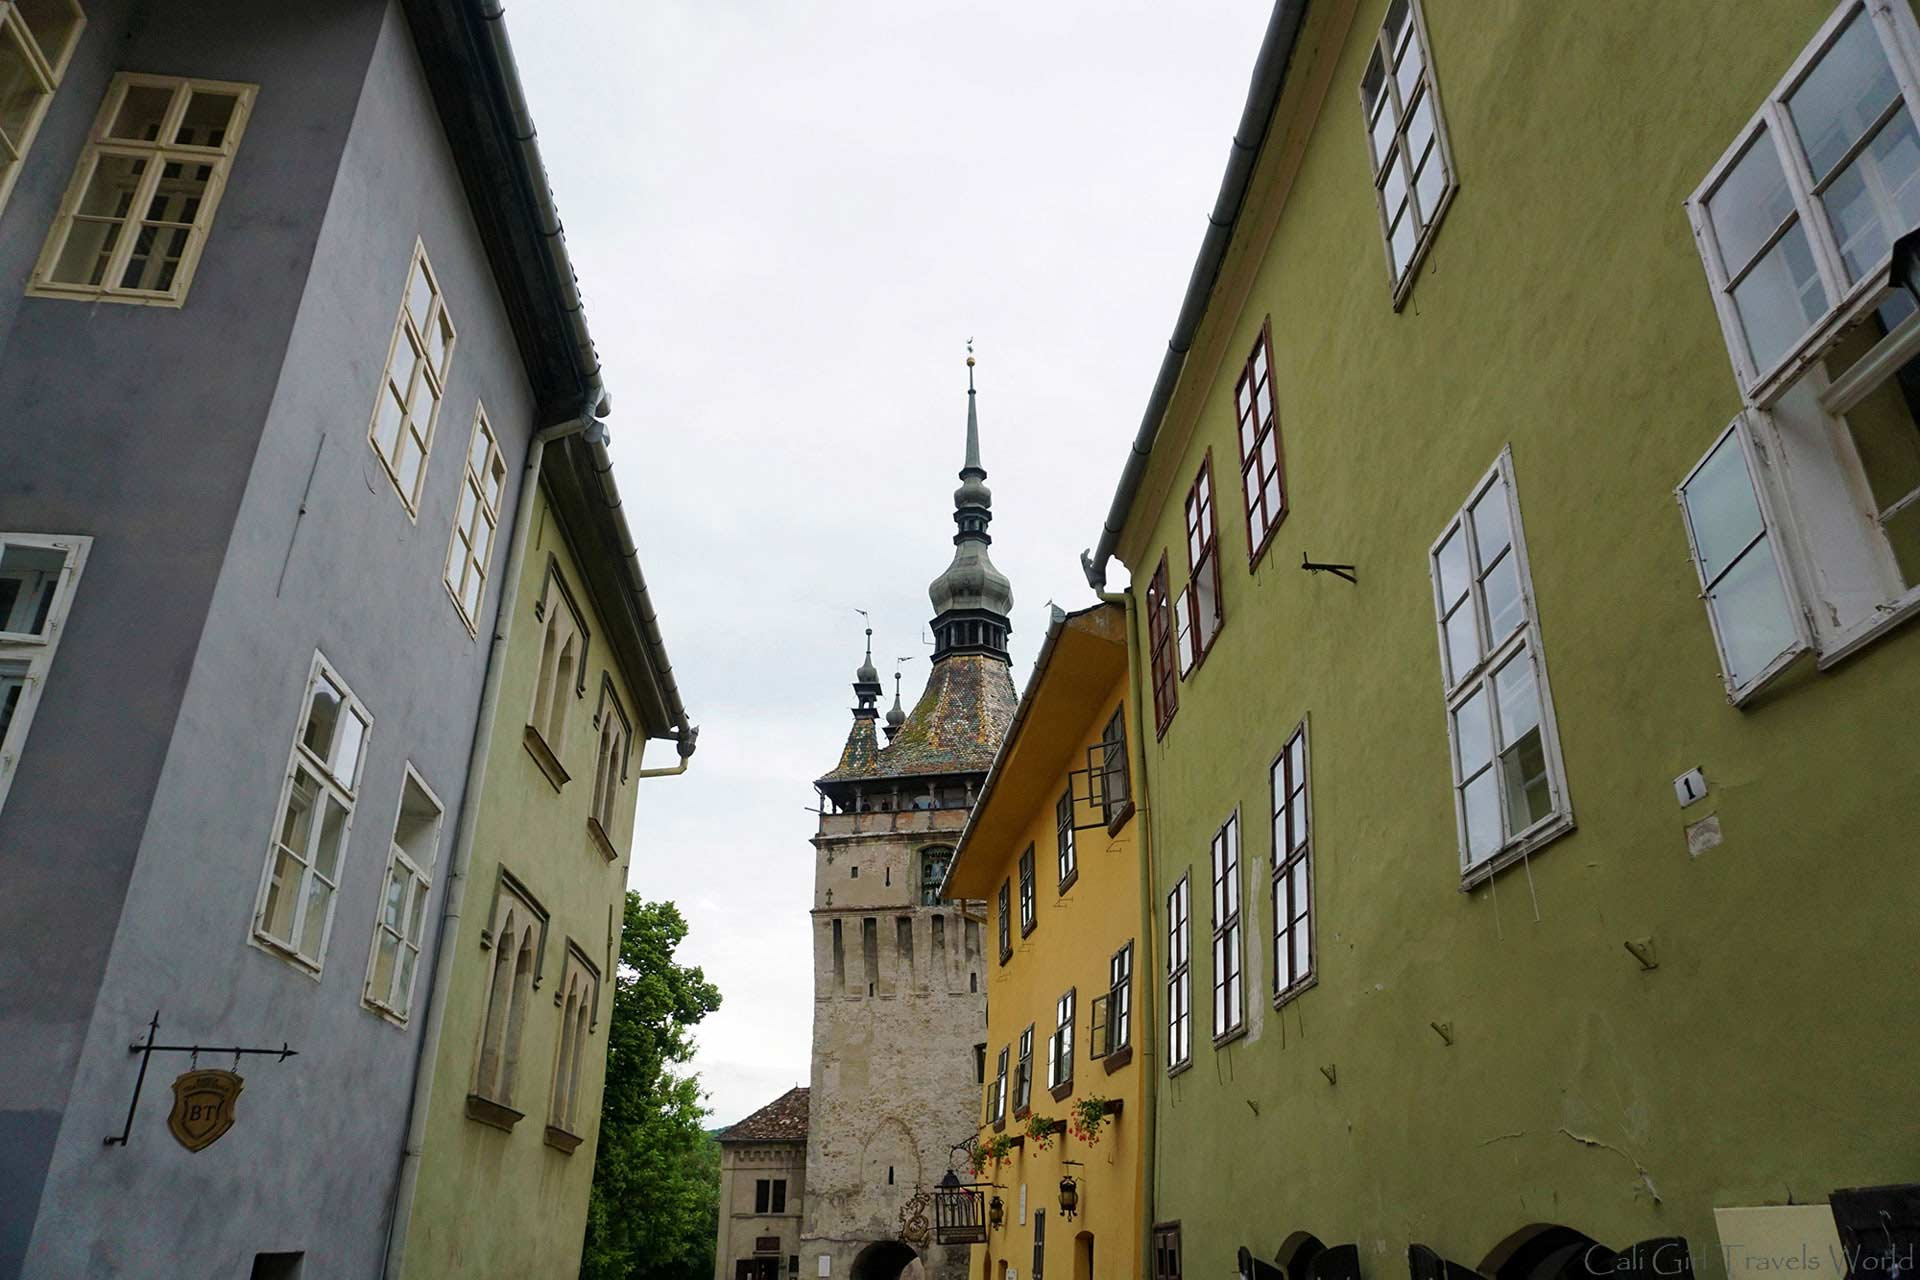 Colorful Buildings on a cloudy day in Sighisoara